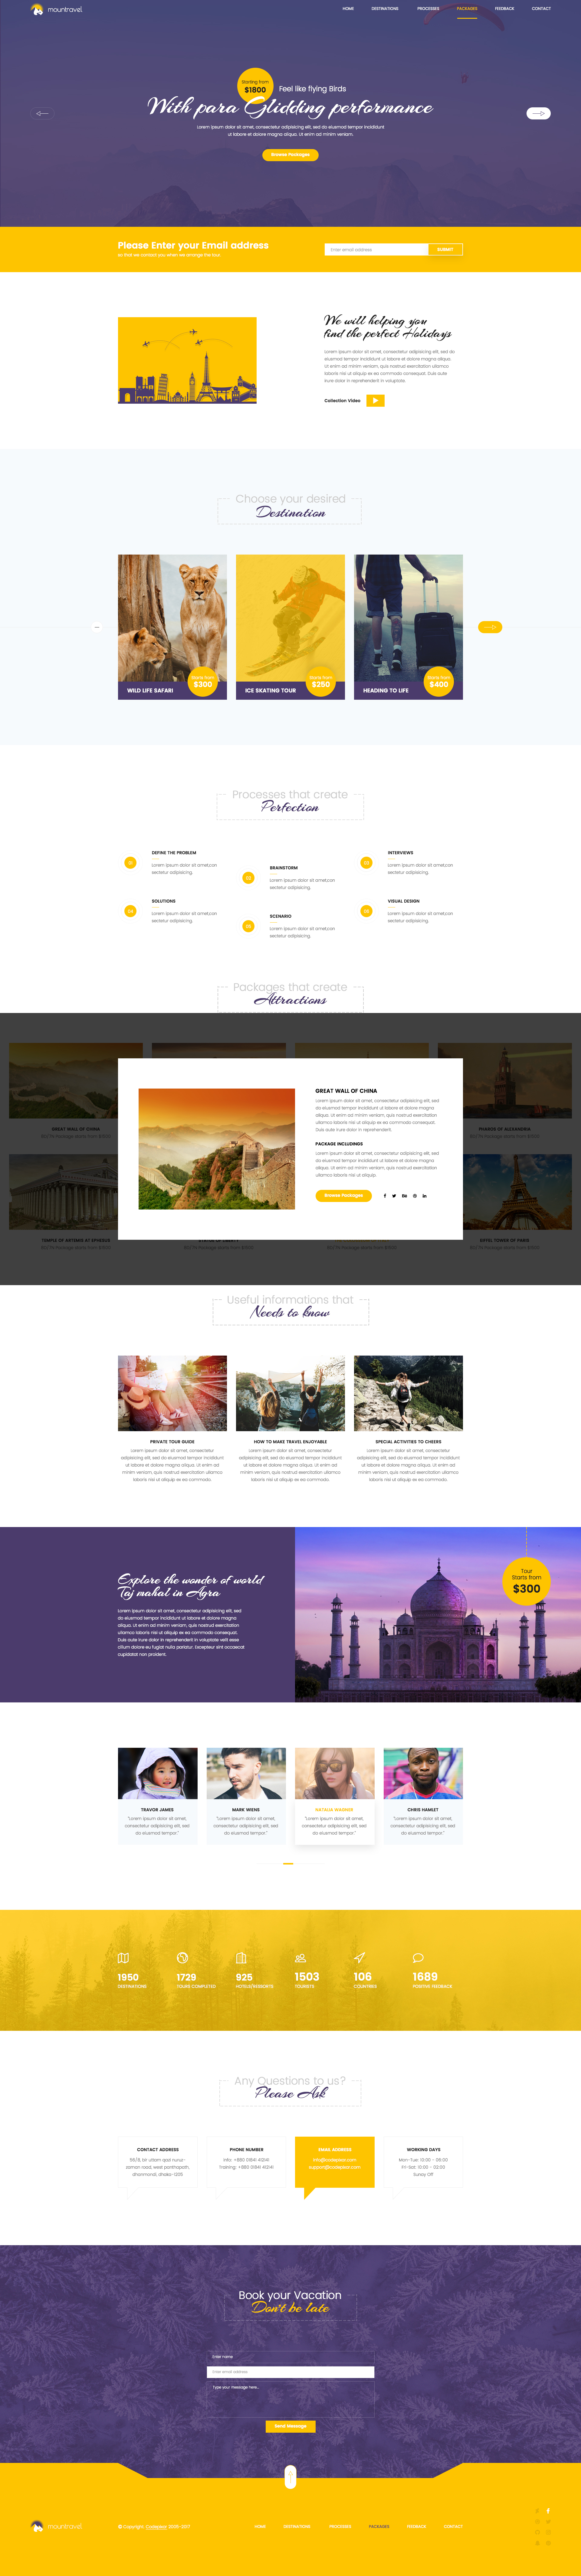 Mountravel Lead Generation Landing Page PSD Template By CodePixar - Lead generation website template